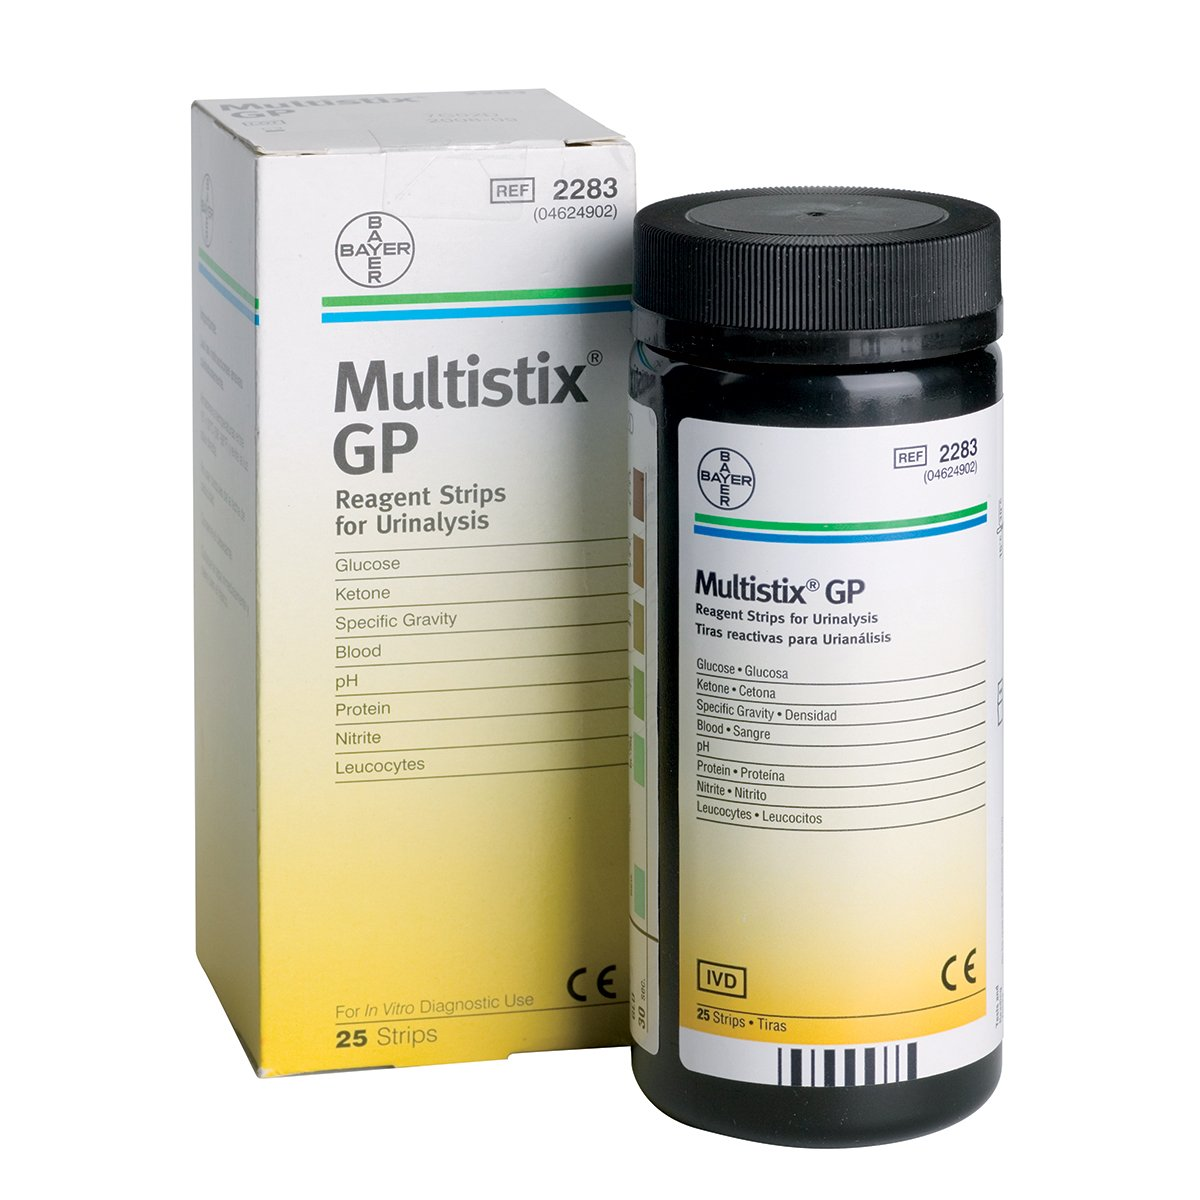 Multistix GP Urine Test Strips